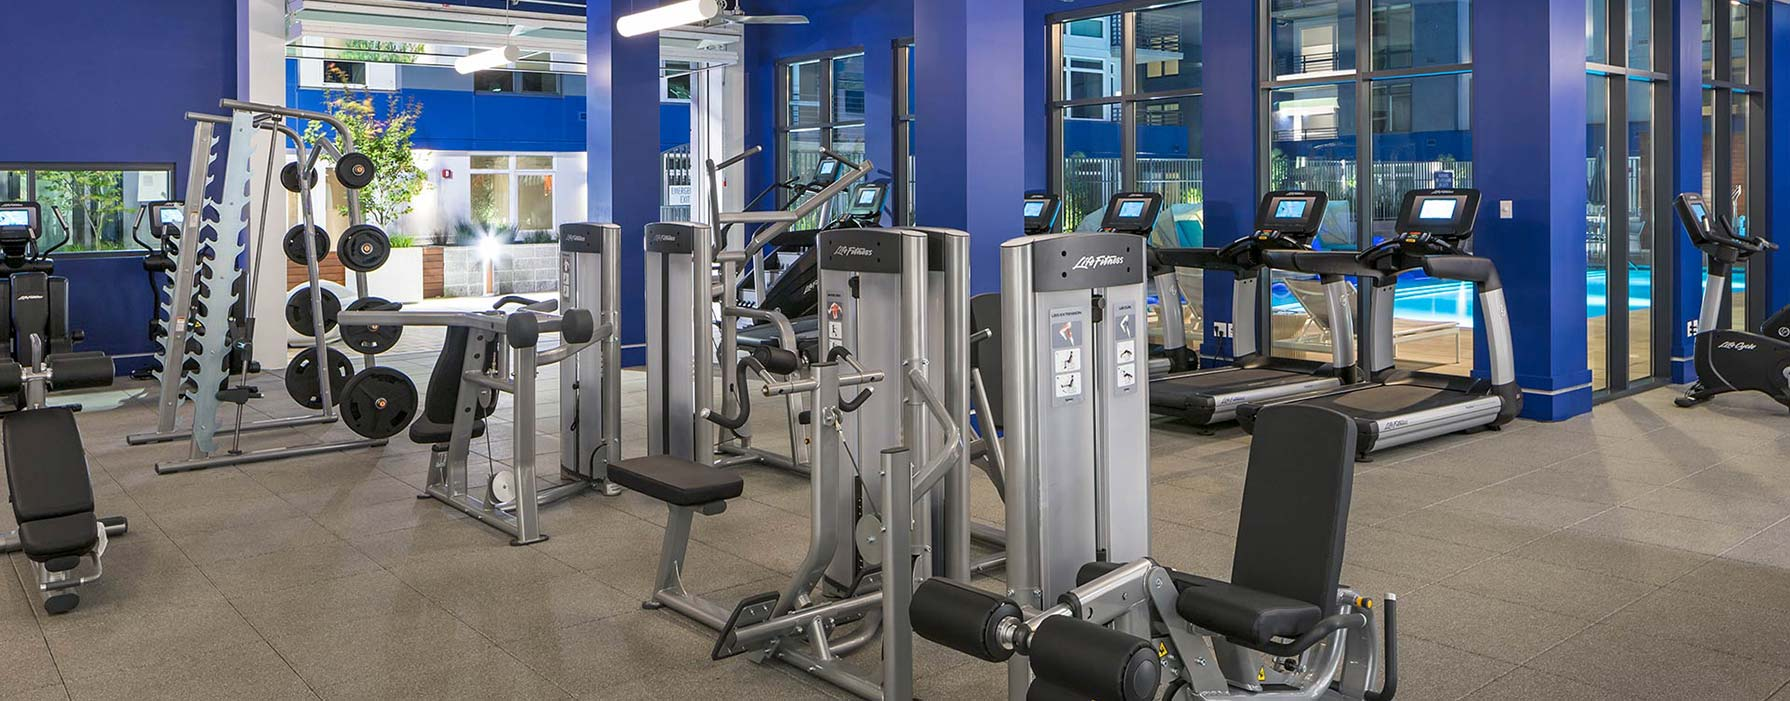 Indigo Apartments - Redwood City, CA - Workout Room